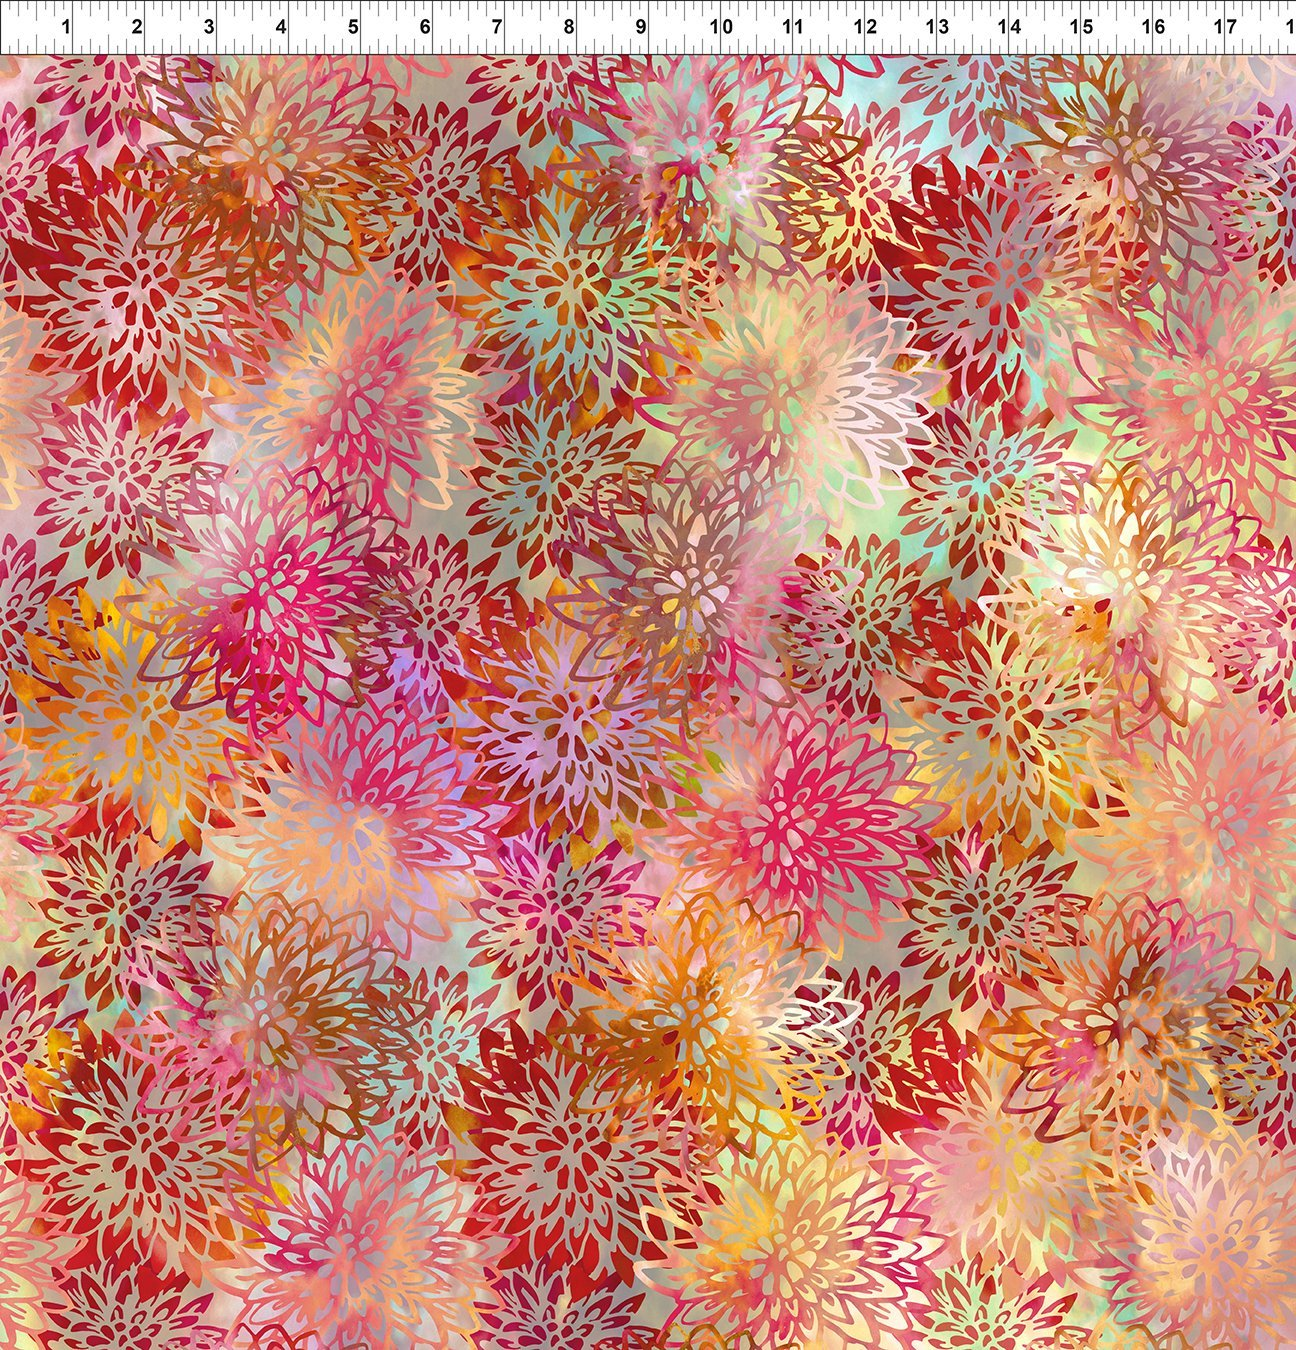 5HVN-1 Haven - Chrysanthemums - Multi by Jason Yenter for In The Beginning Fabric